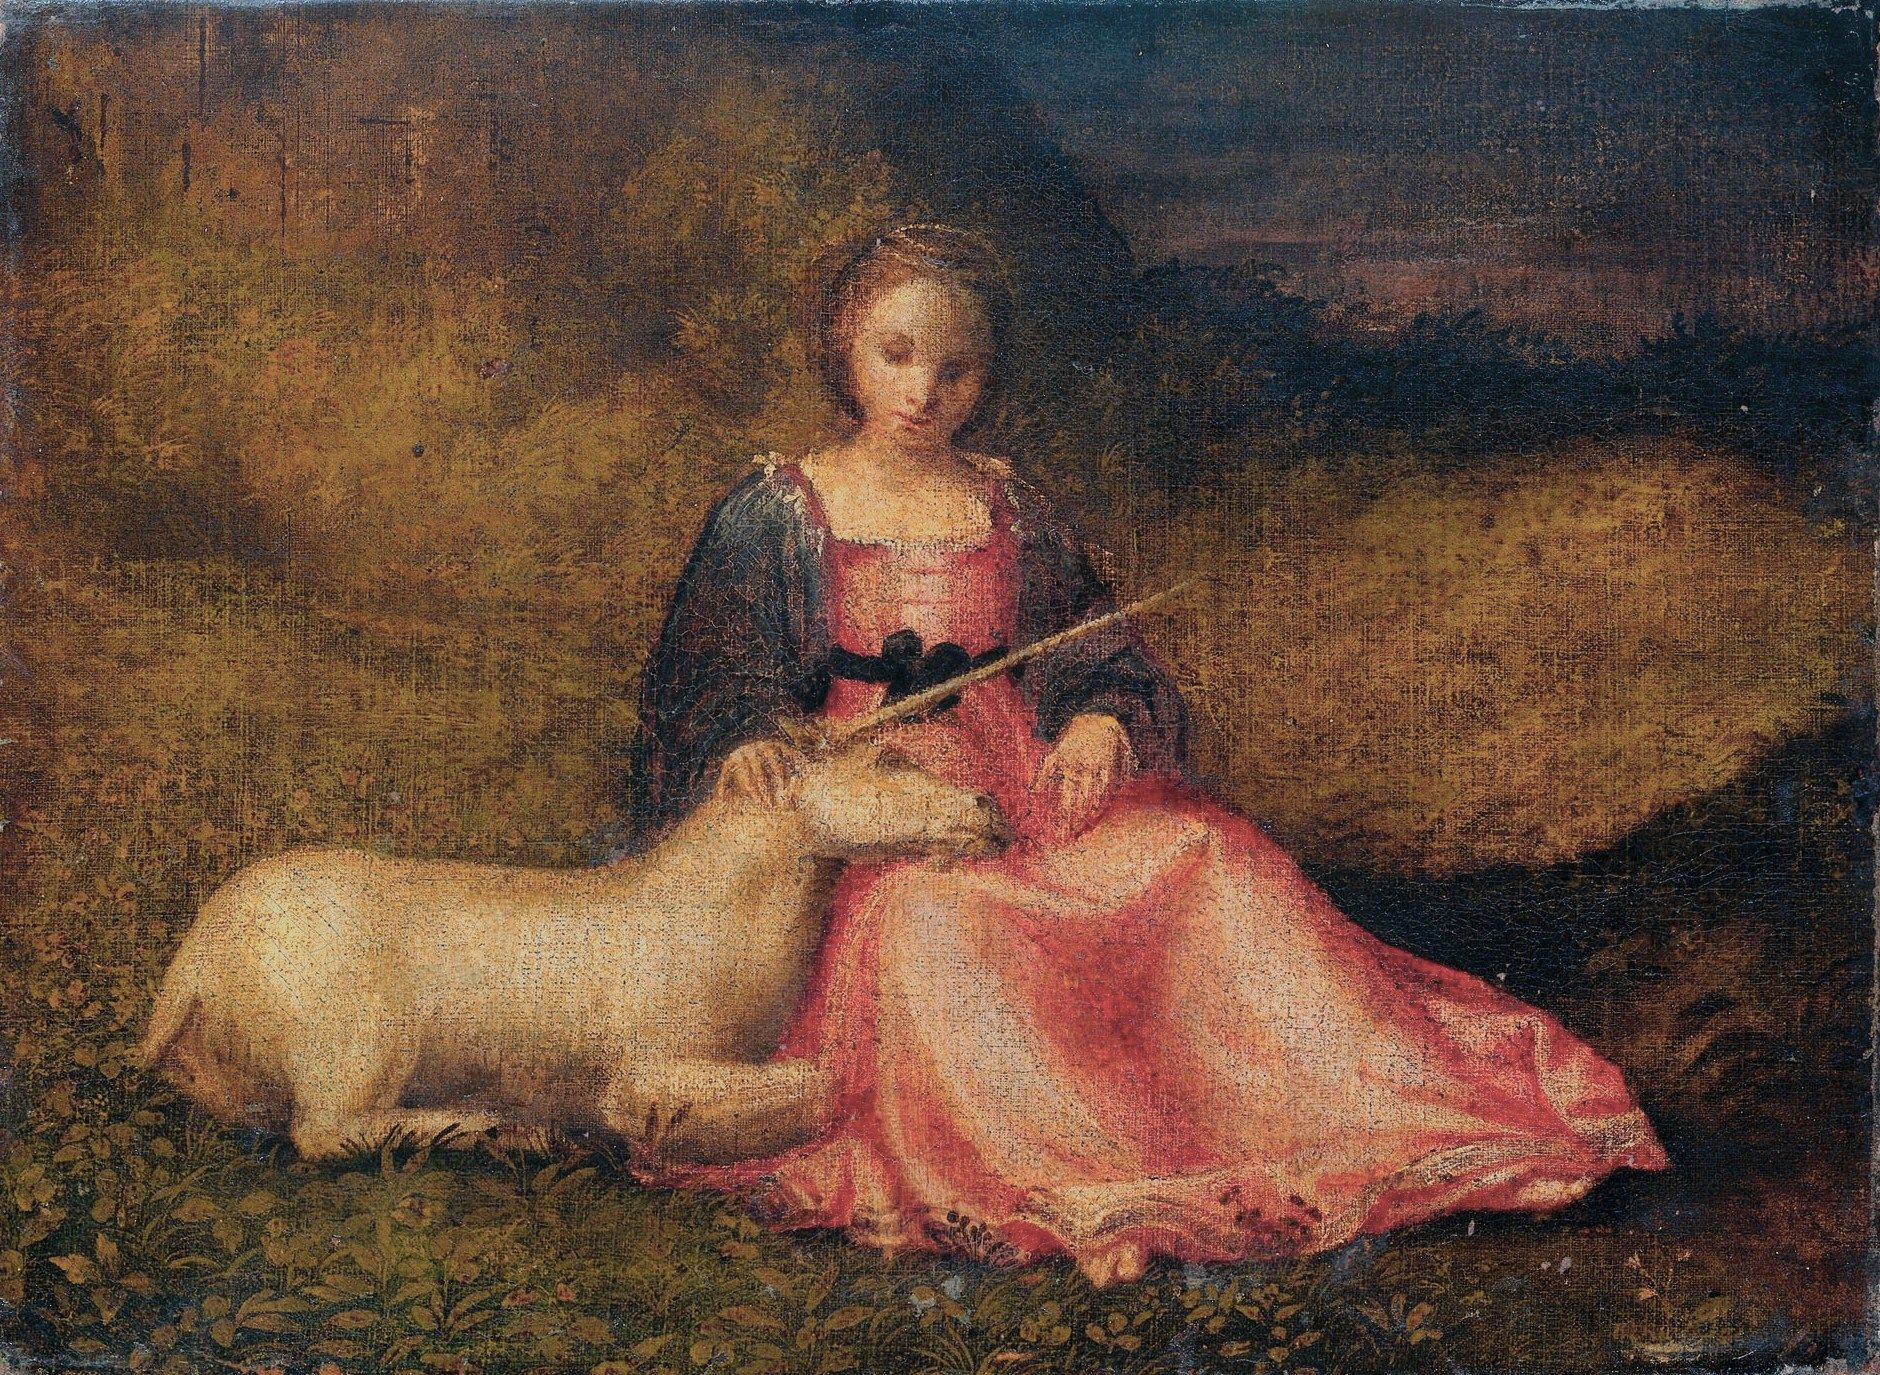 Worksheet Myth Of The Unicorn 1000 images about unicorn on pinterest a museums and giorgione allegory of chastity lady with 1500 amsterdam rijksmuseum